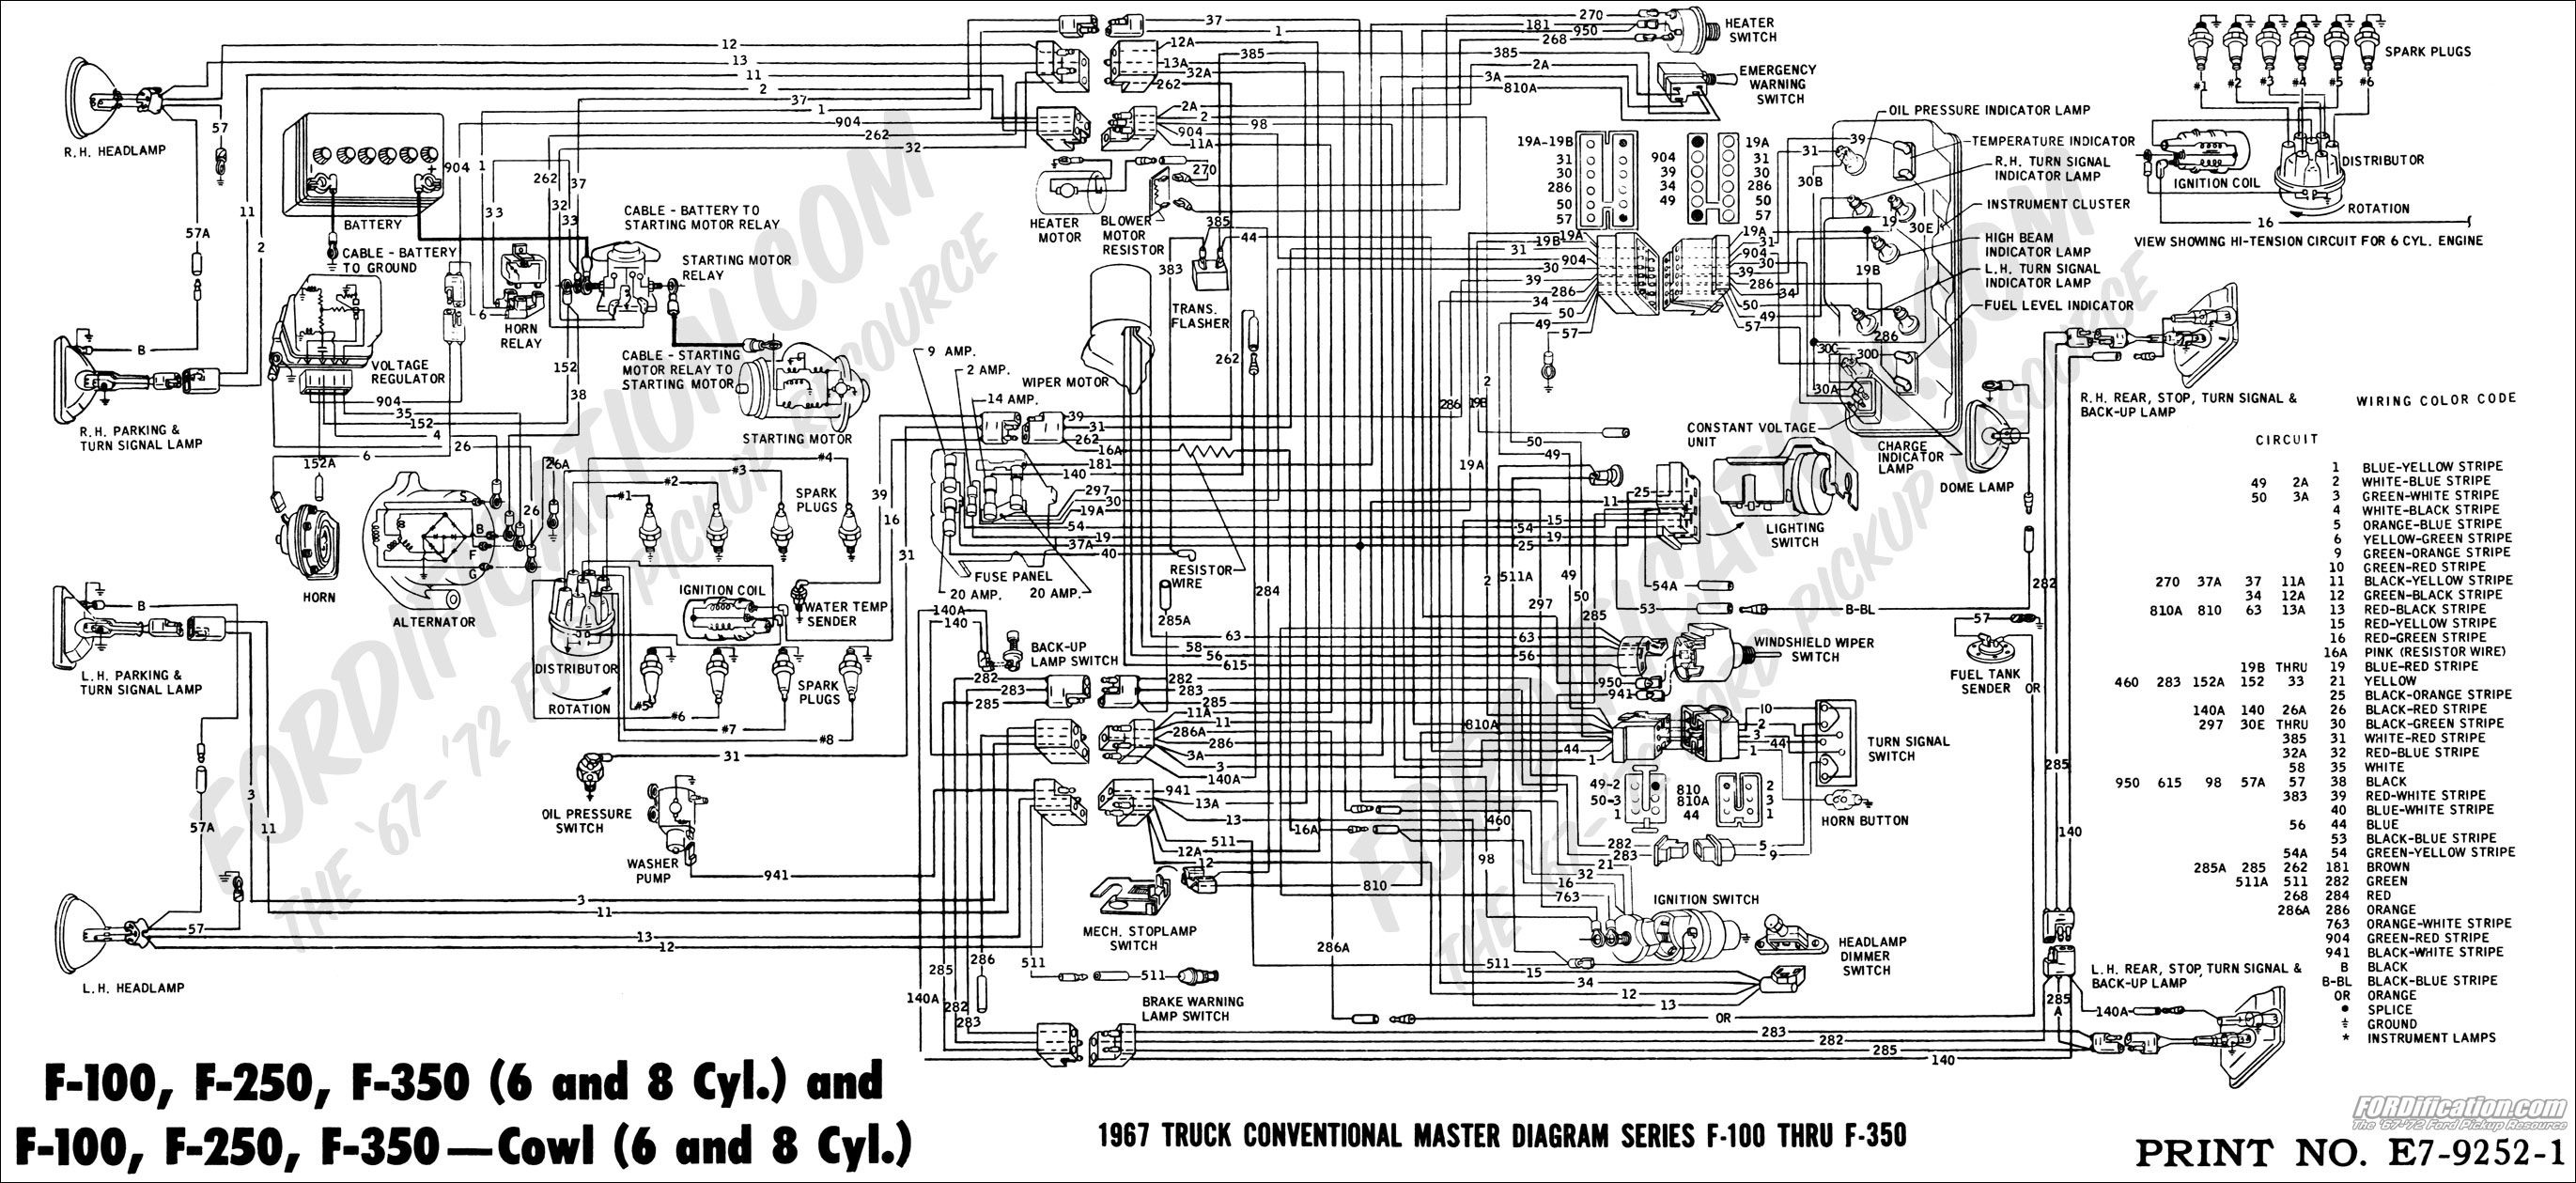 67masterdiagram wiring diagrams ford 2014 f150 readingrat net 1990 ford ranger wiring diagram at edmiracle.co